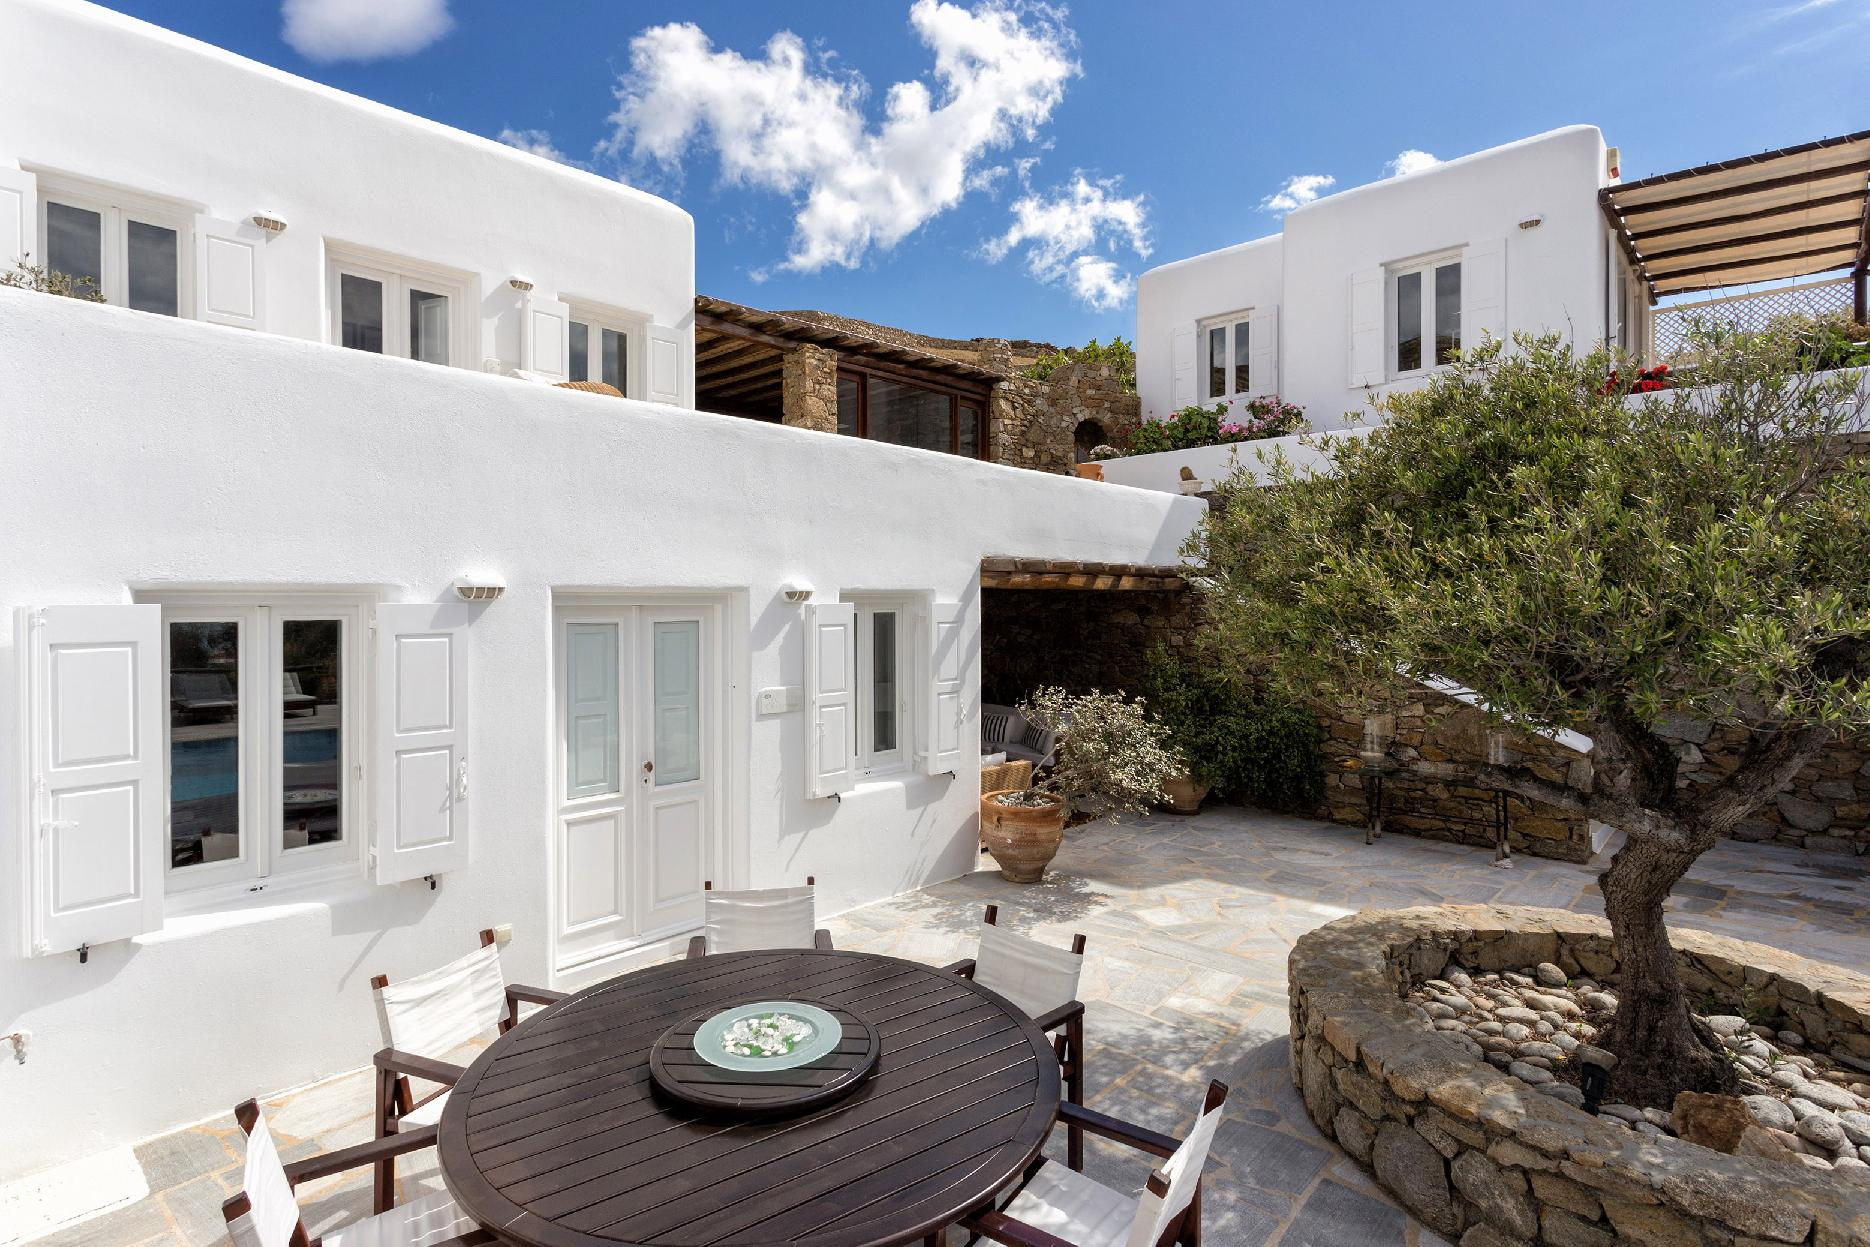 HOUSE OF THE SUN@The Galaxy Mykonos villa photo 1411913